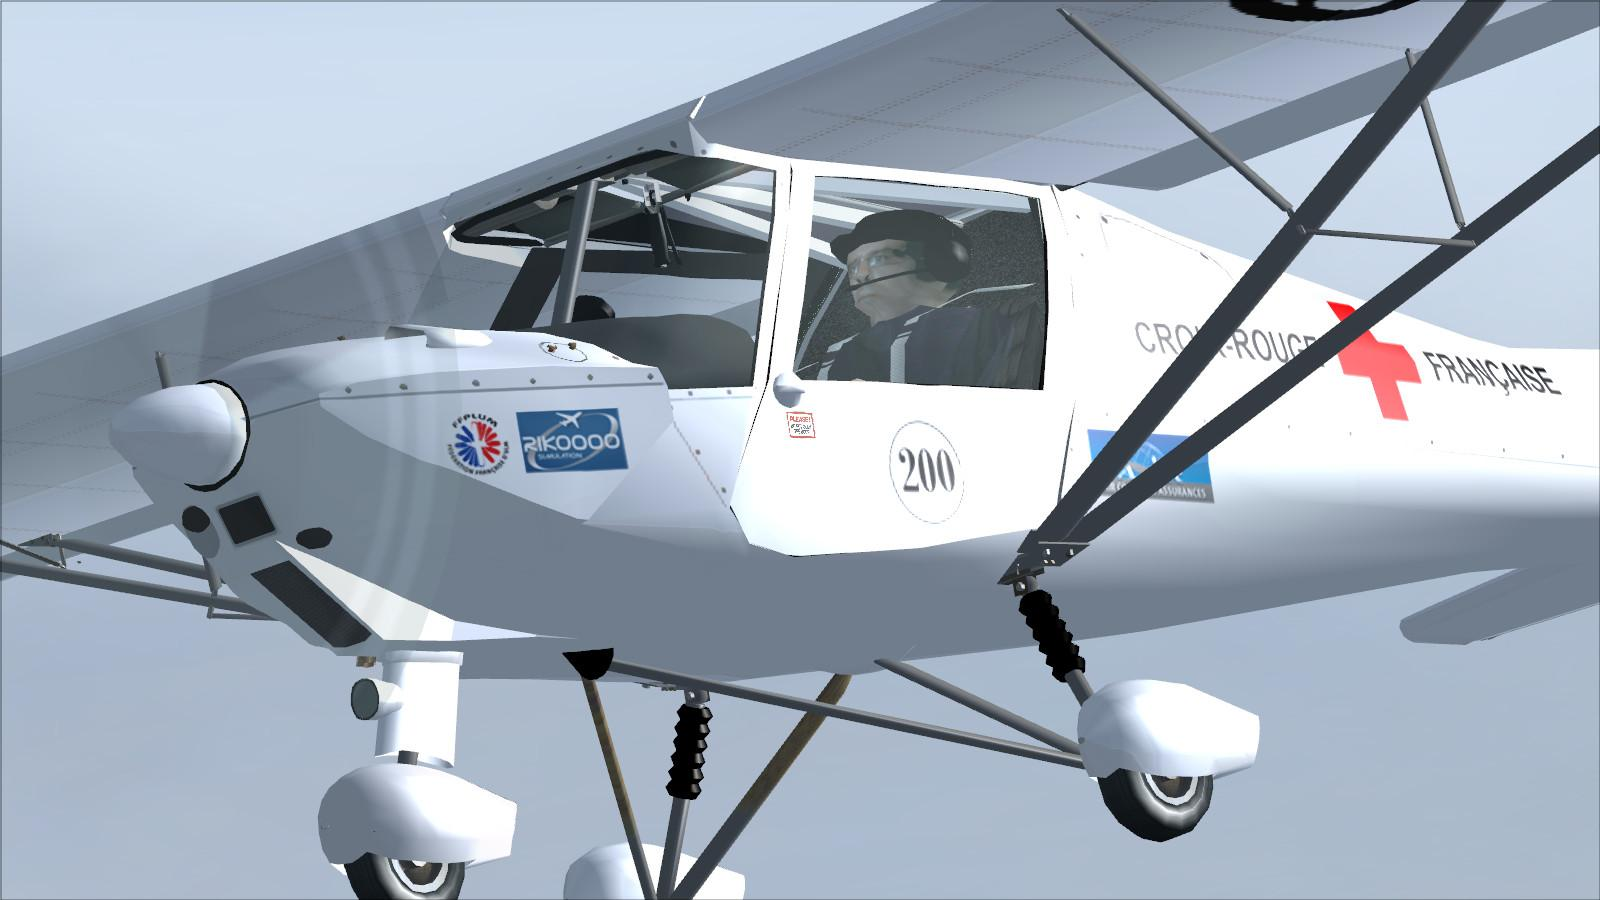 Download Comco Ikarus C42 Red Cross Fsx P3d Rikoooo